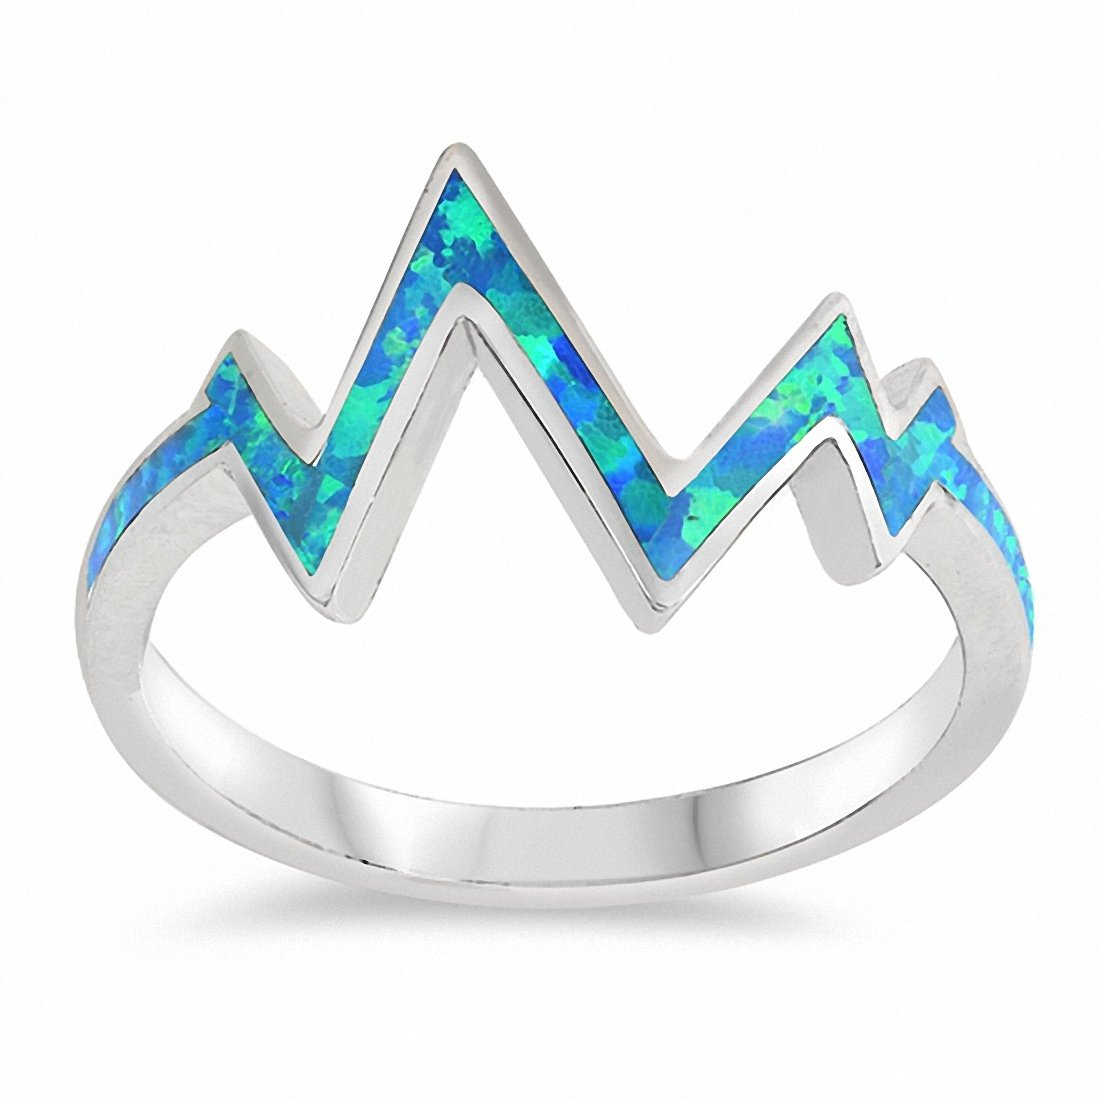 Zig Zag Band Ring Created Opal 925 Sterling Silver Choose Color